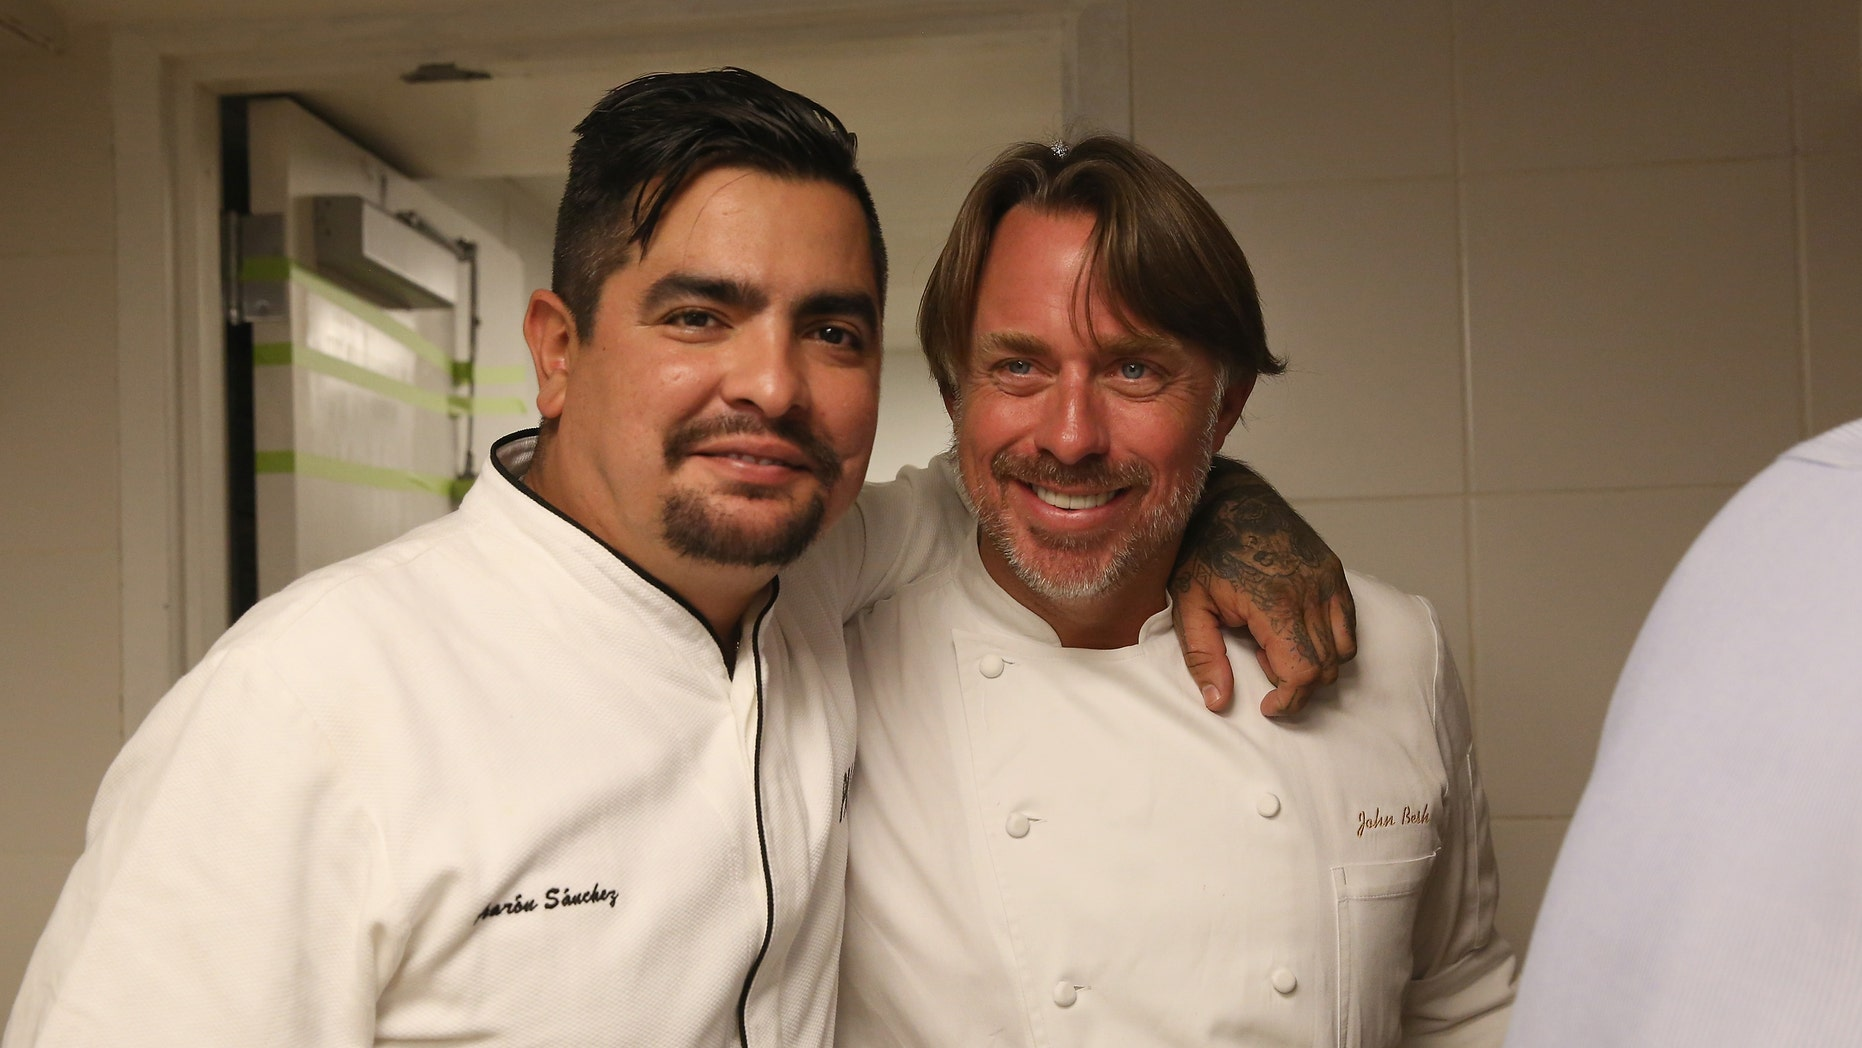 NEW YORK, NY - OCTOBER 16:  Chefs Aaron Sanchez (L) and John Besh pose at the Johnny Sanchez Dinner hosted by John Besh, Aaron Sanchez and Katy Sparks as a part of the Bank of America Dinner Series during the Food Network New York City Wine & Food Festival Presented By FOOD & WINE at Tavern On The Green on October 16, 2014 in New York City.  (Photo by Mireya Acierto/Getty Images for NYCWFF)